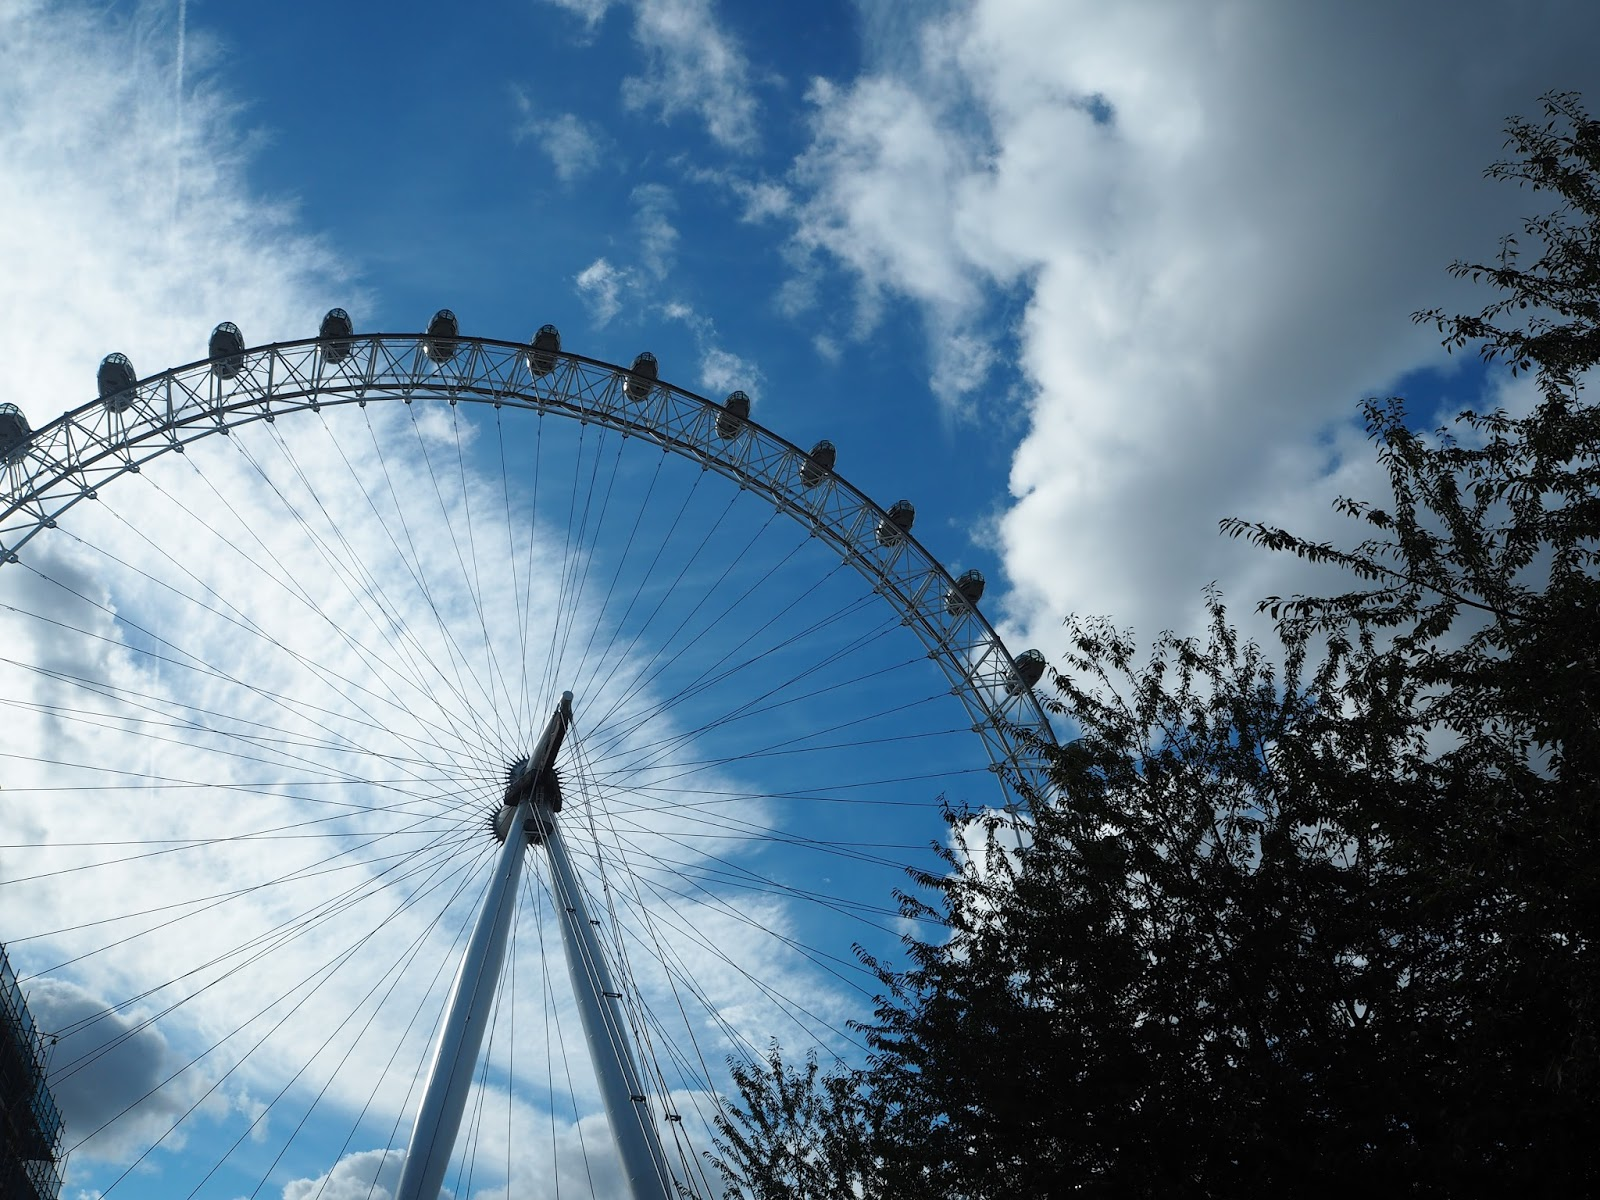 The London eye, Blue sky